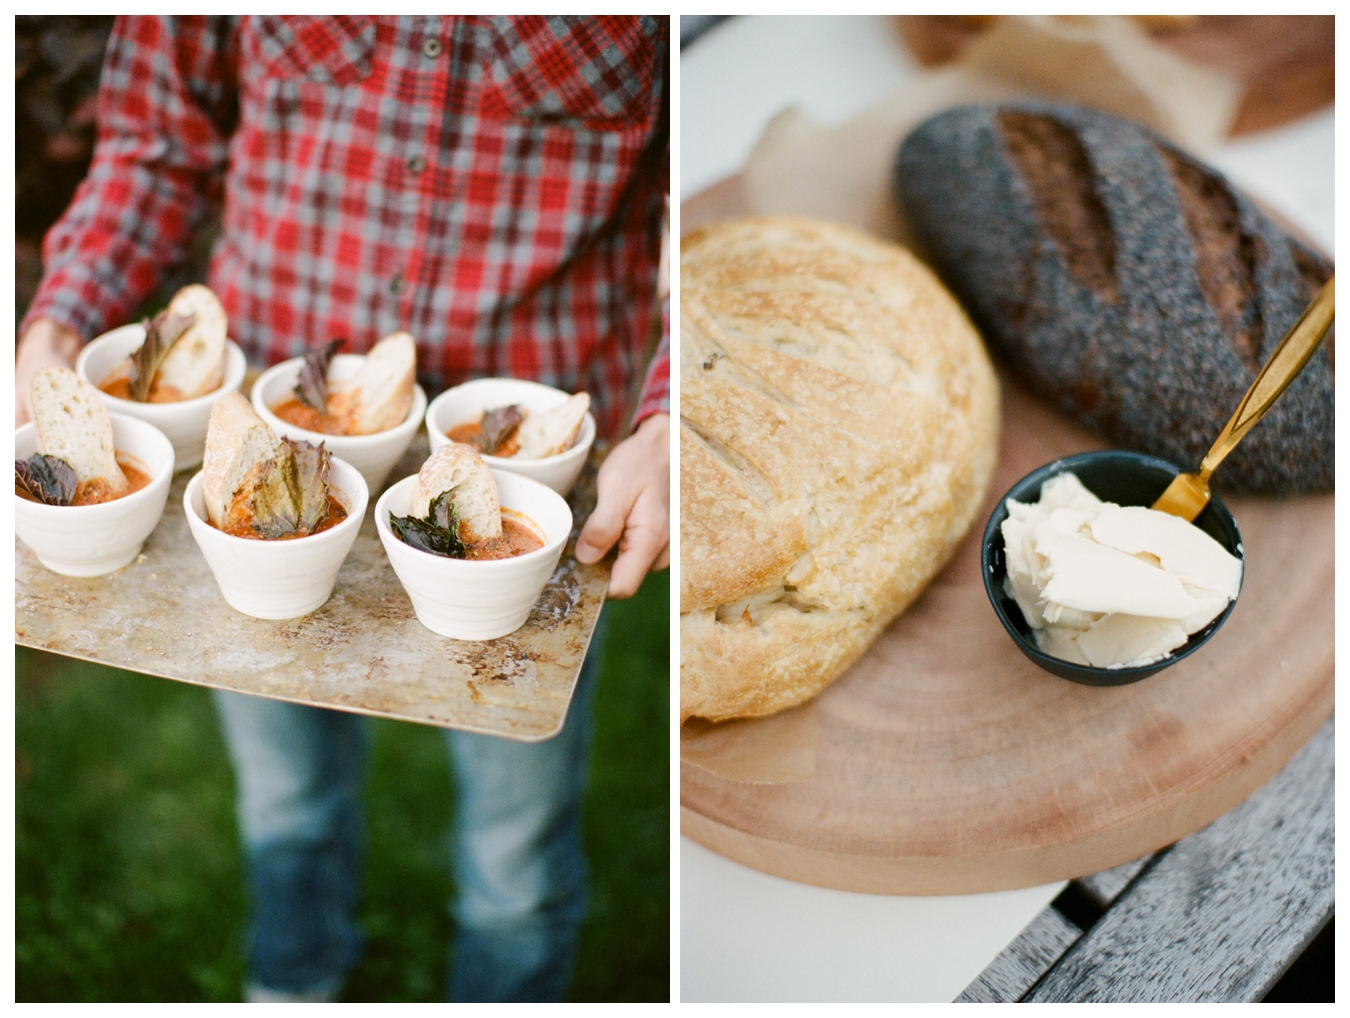 Tomato Soup + Grilled, Grilled Cheese by Ginger+Birch | images by Lily Glass